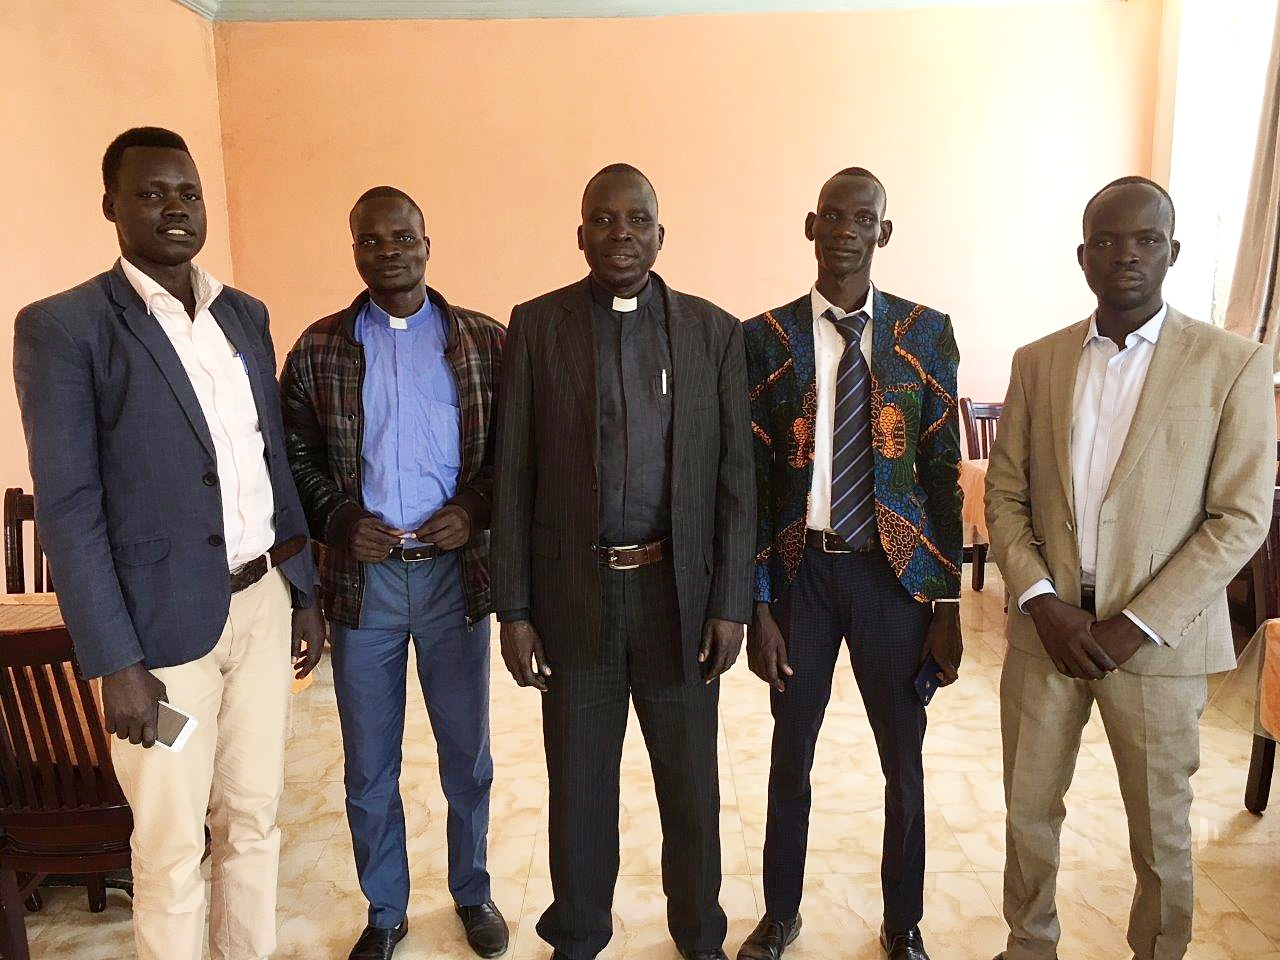 East Gambella Bethel Synod leaders-Rev. Ogatu Ojulum, president, is in the center